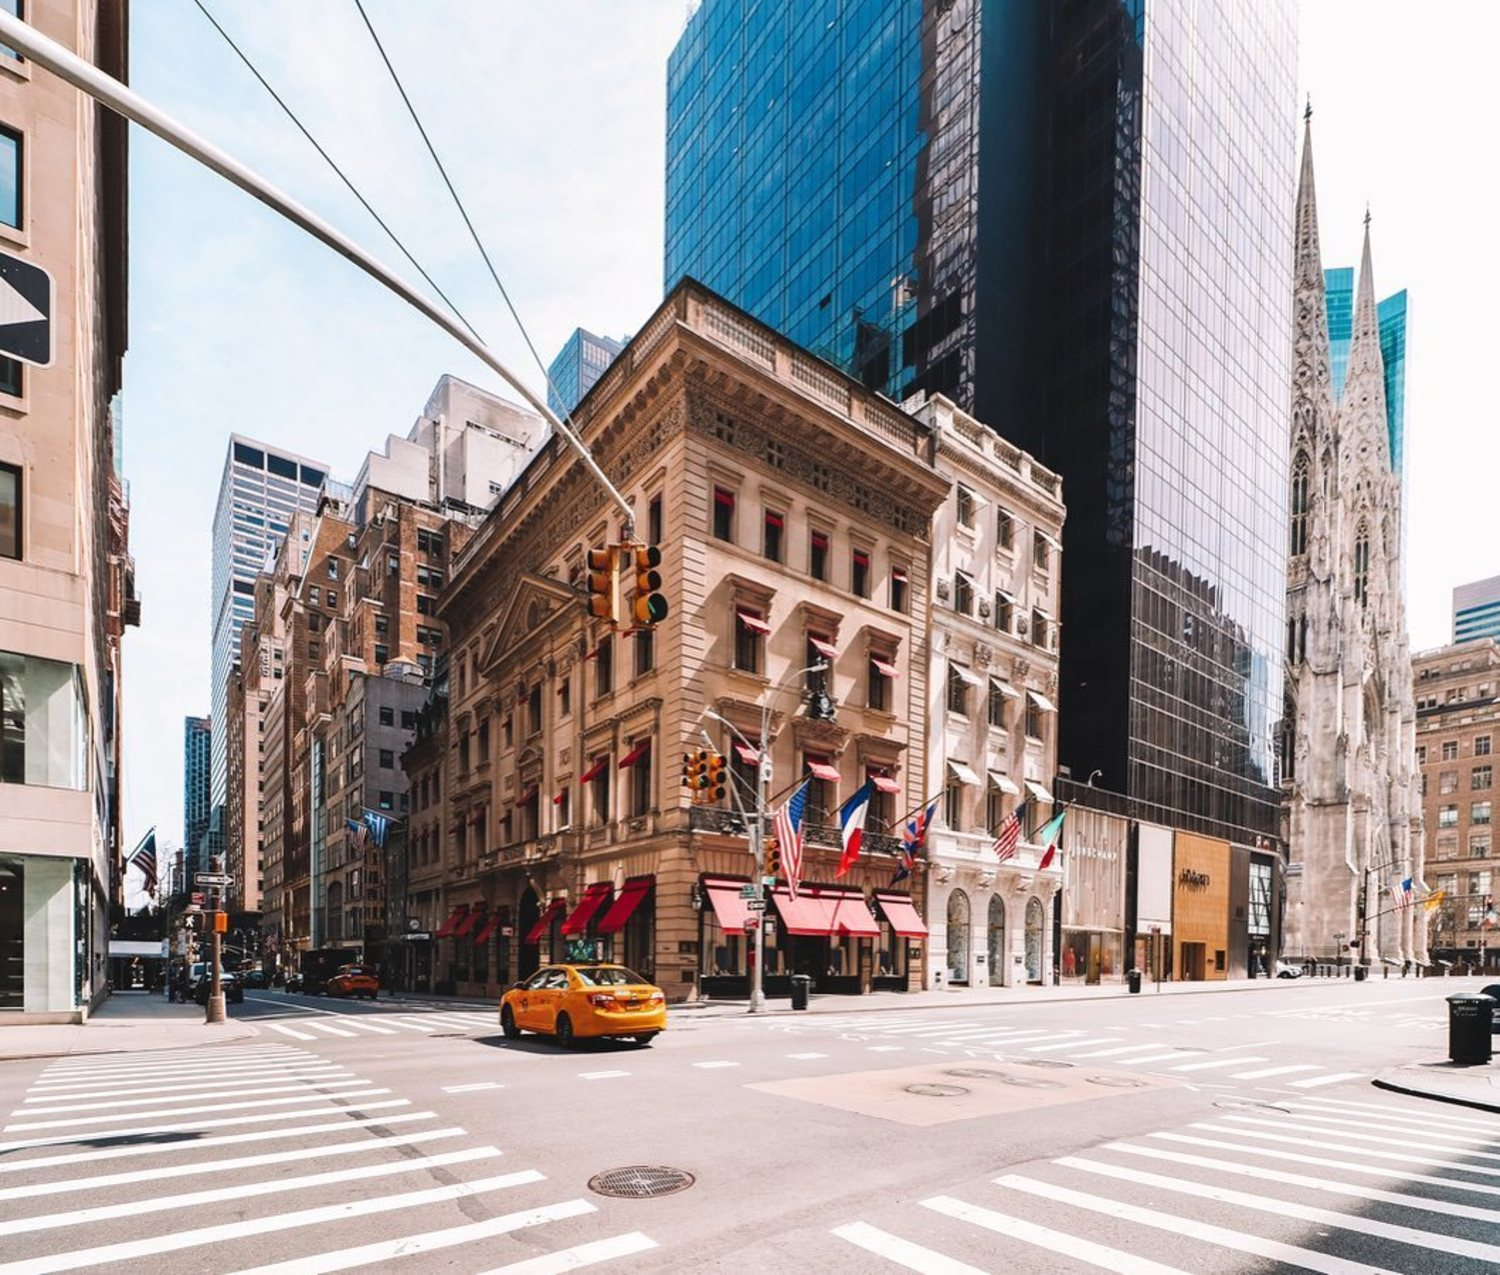 5th Avenue and 52nd Street, Midtown, Manhattan